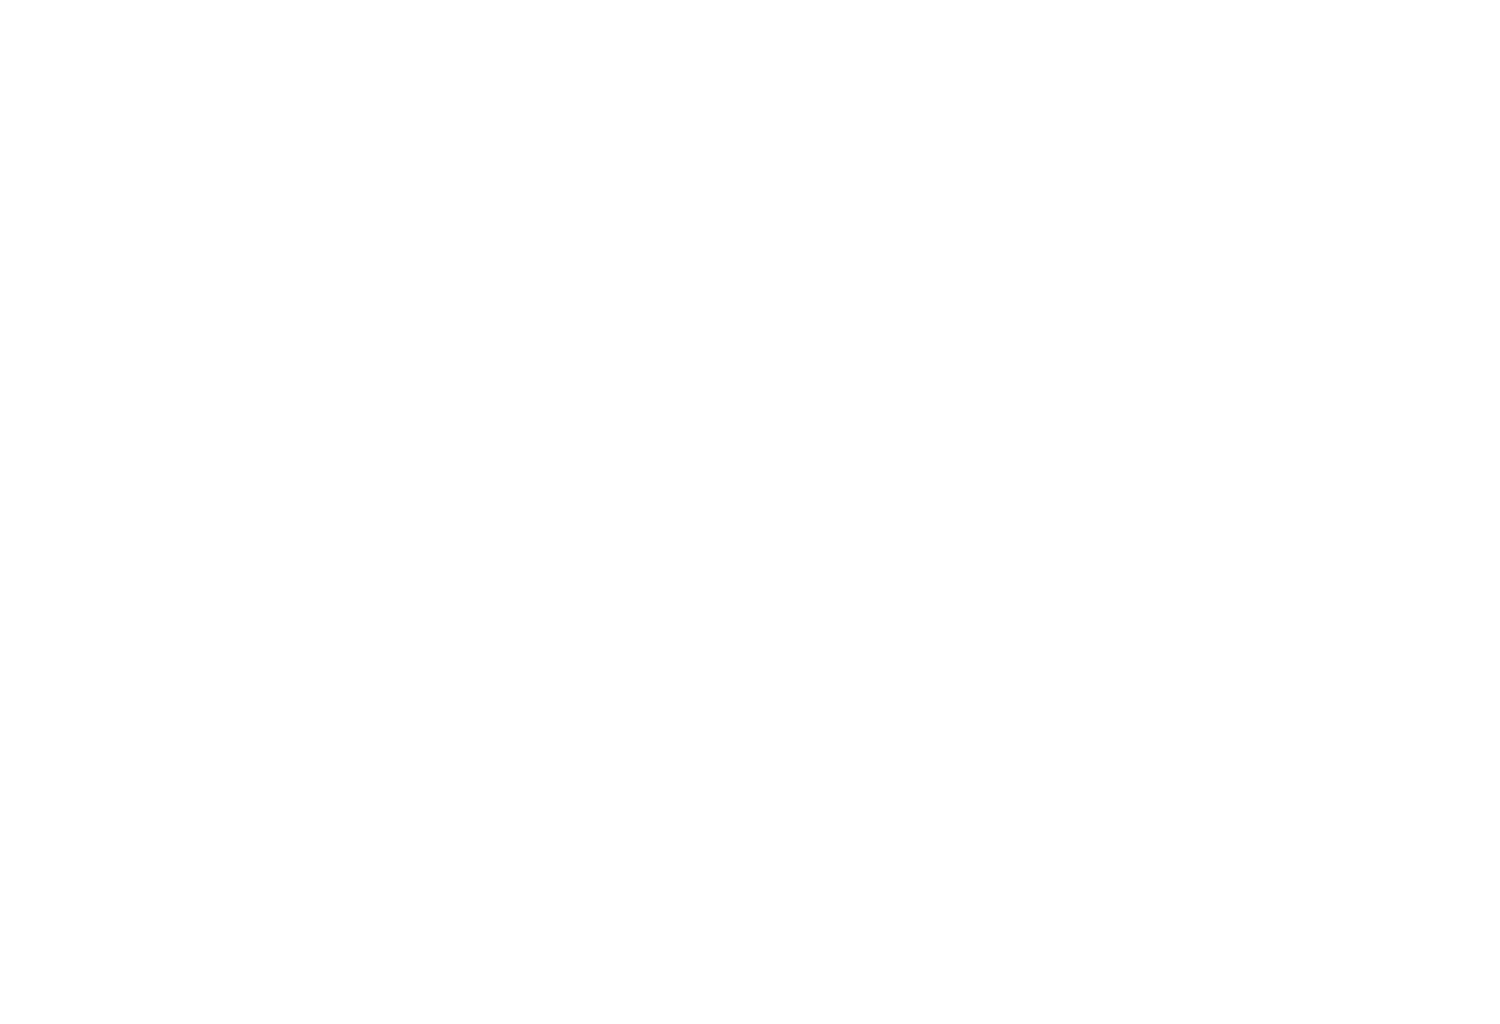 Counting House Bar & Grill